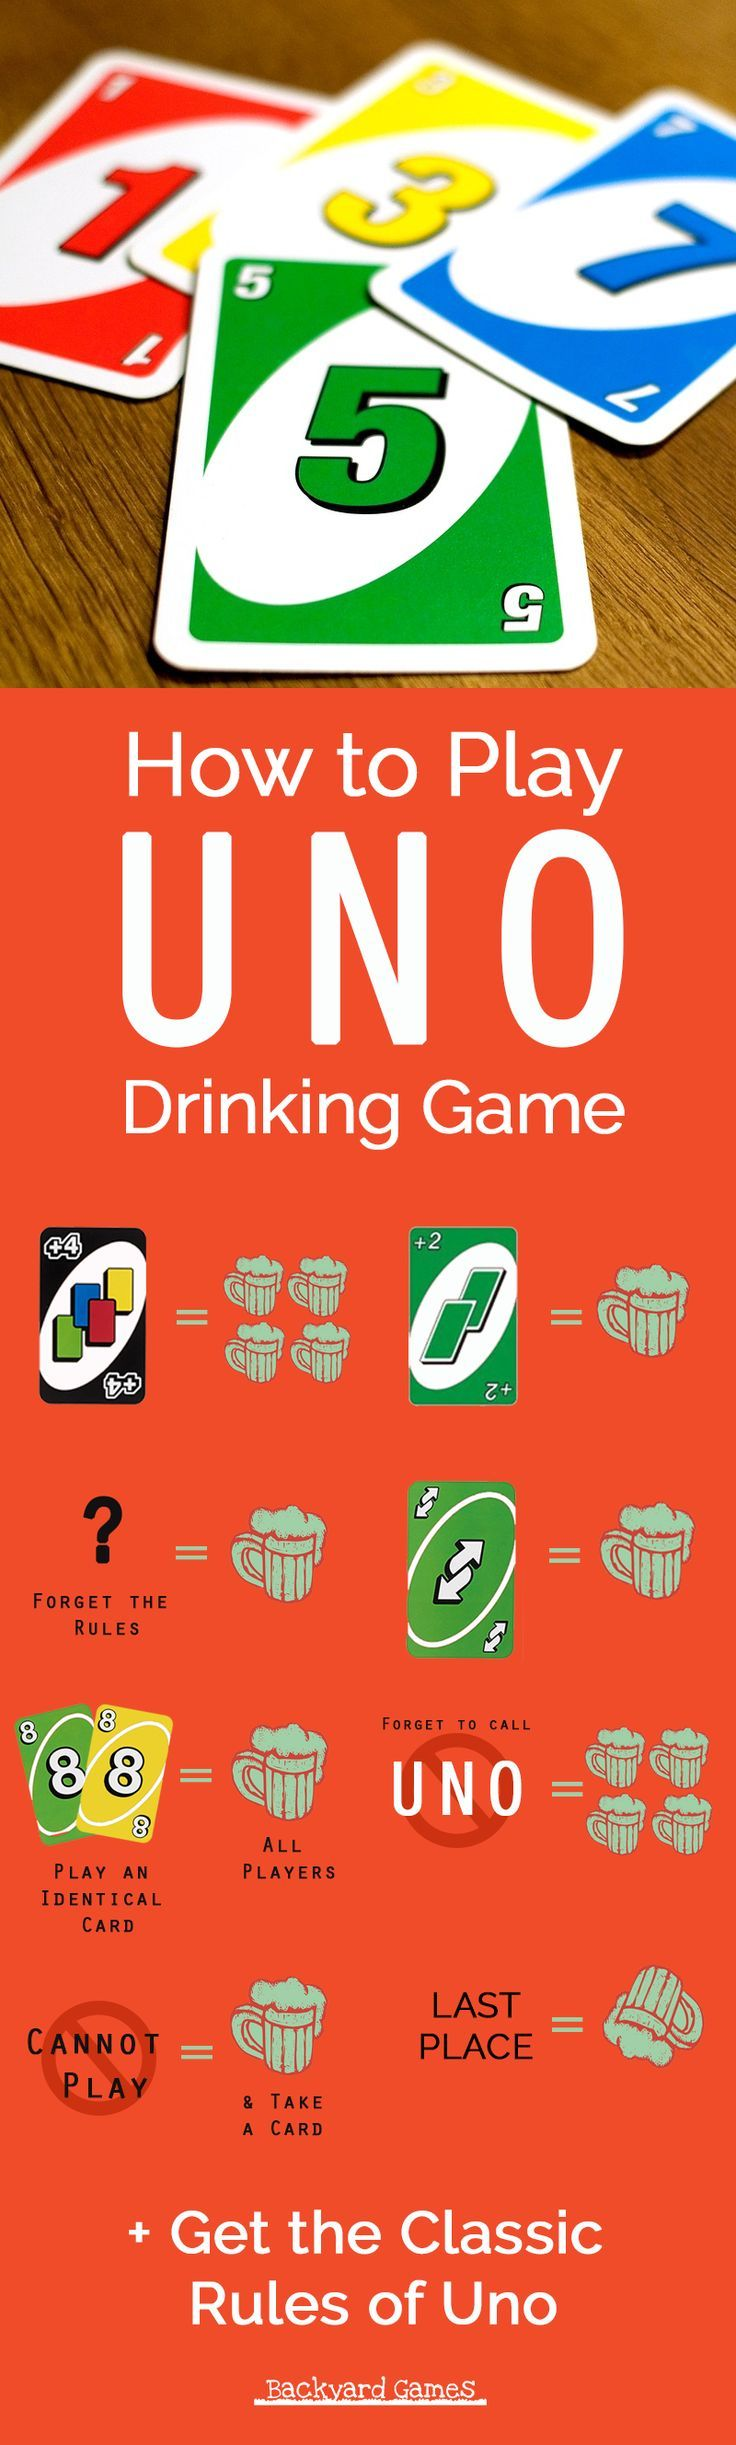 Drunk Uno: How To Play Uno Drinking Card Games [+Rules]